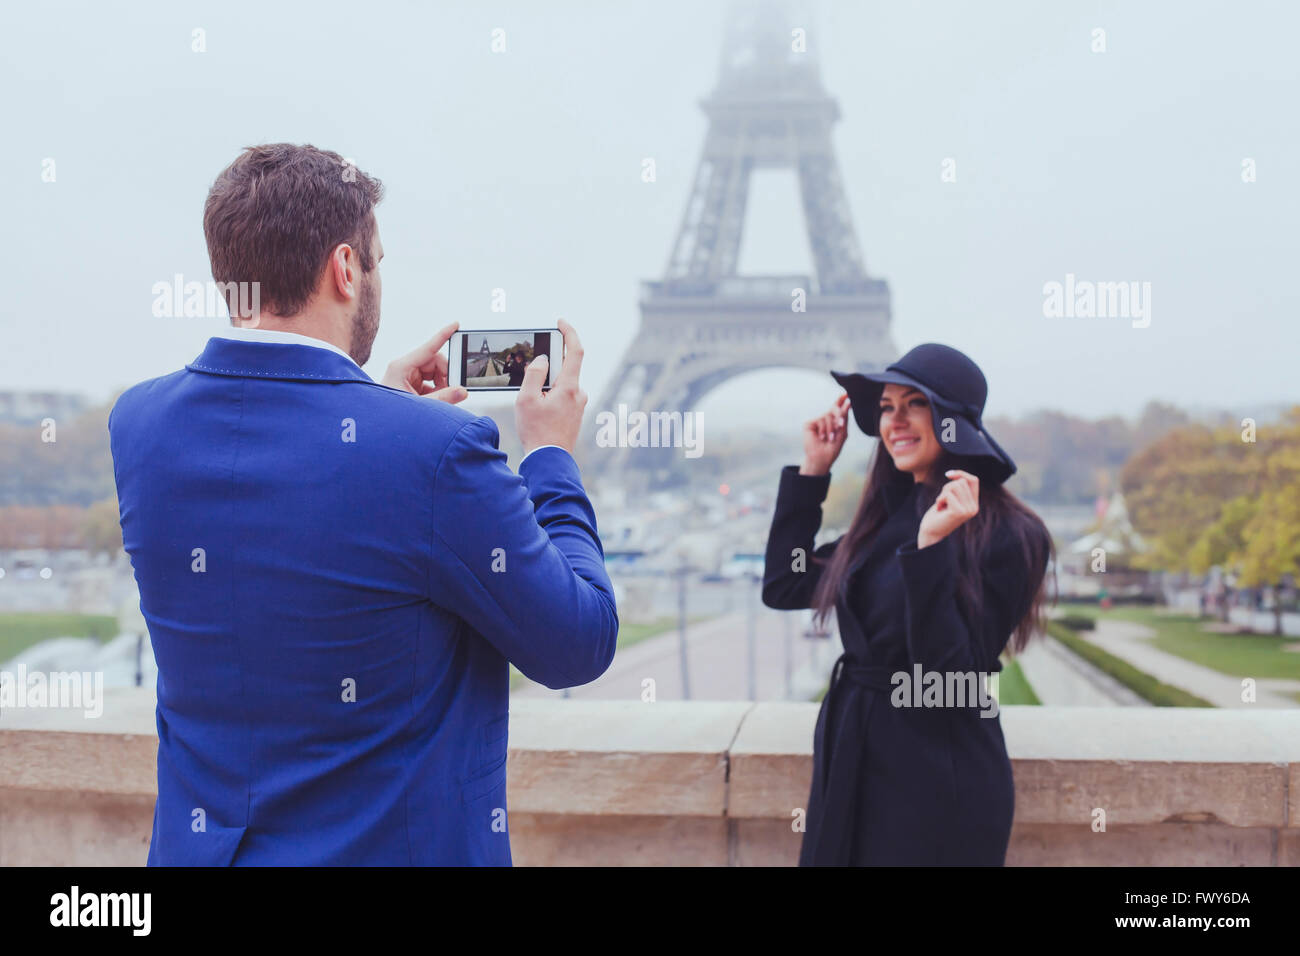 mobile photography, man taking photo of woman with his phone, couple of tourists near Eiffel Tower in Paris, France - Stock Image